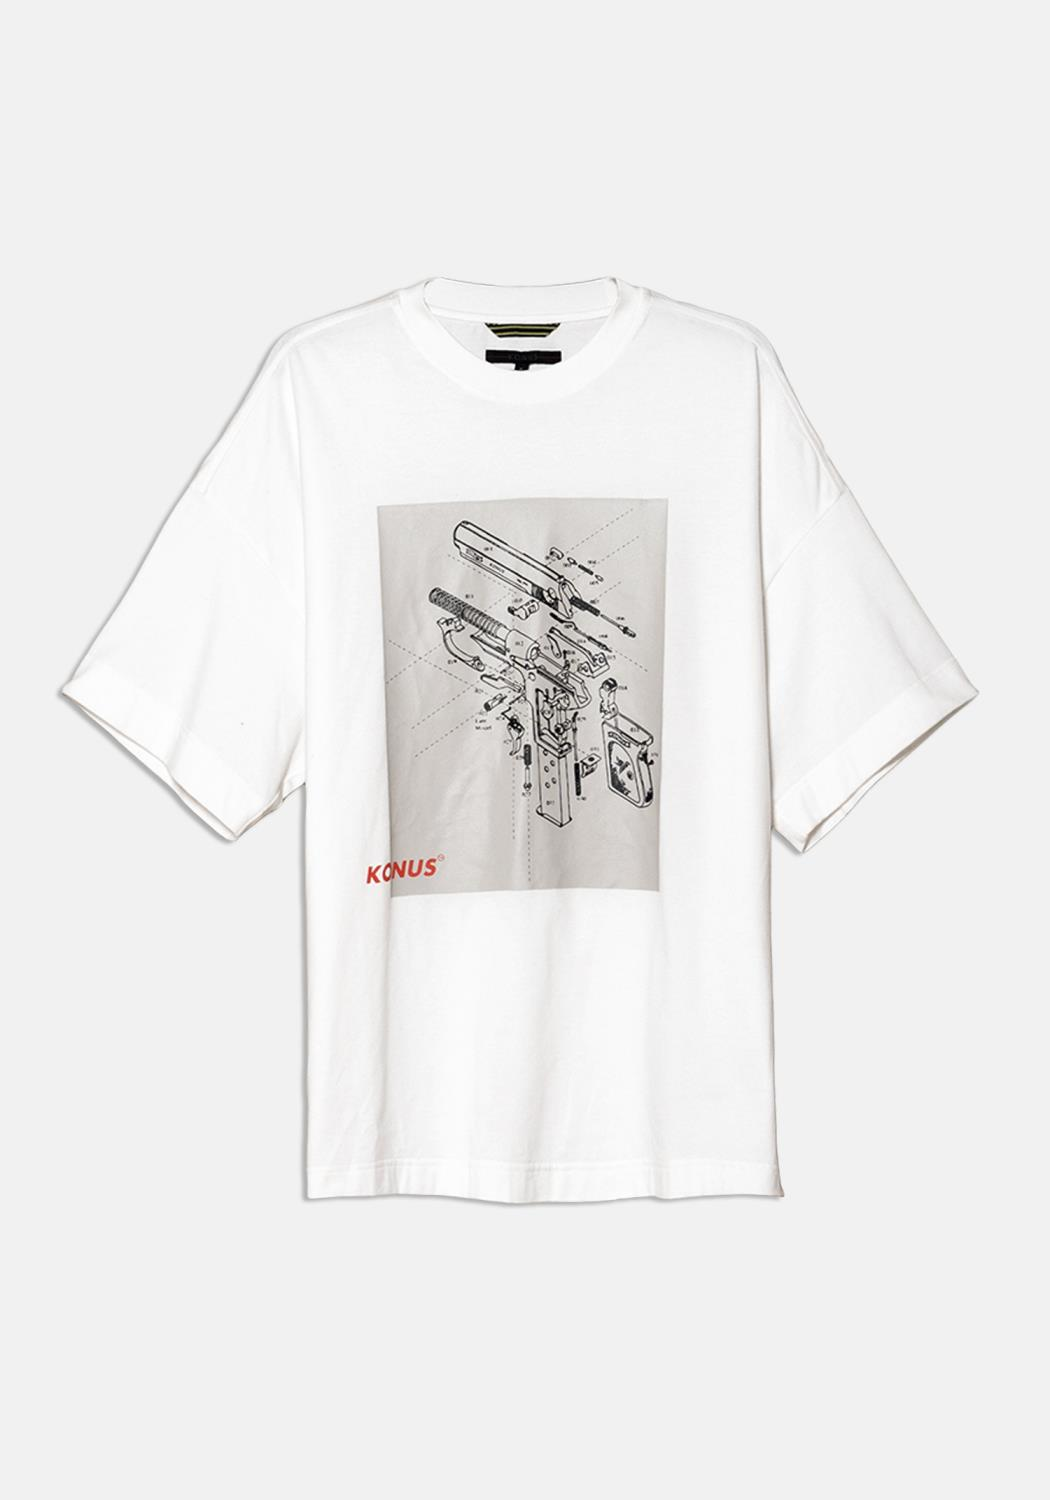 Konus Oversize Short Sleeve Graphic Tee